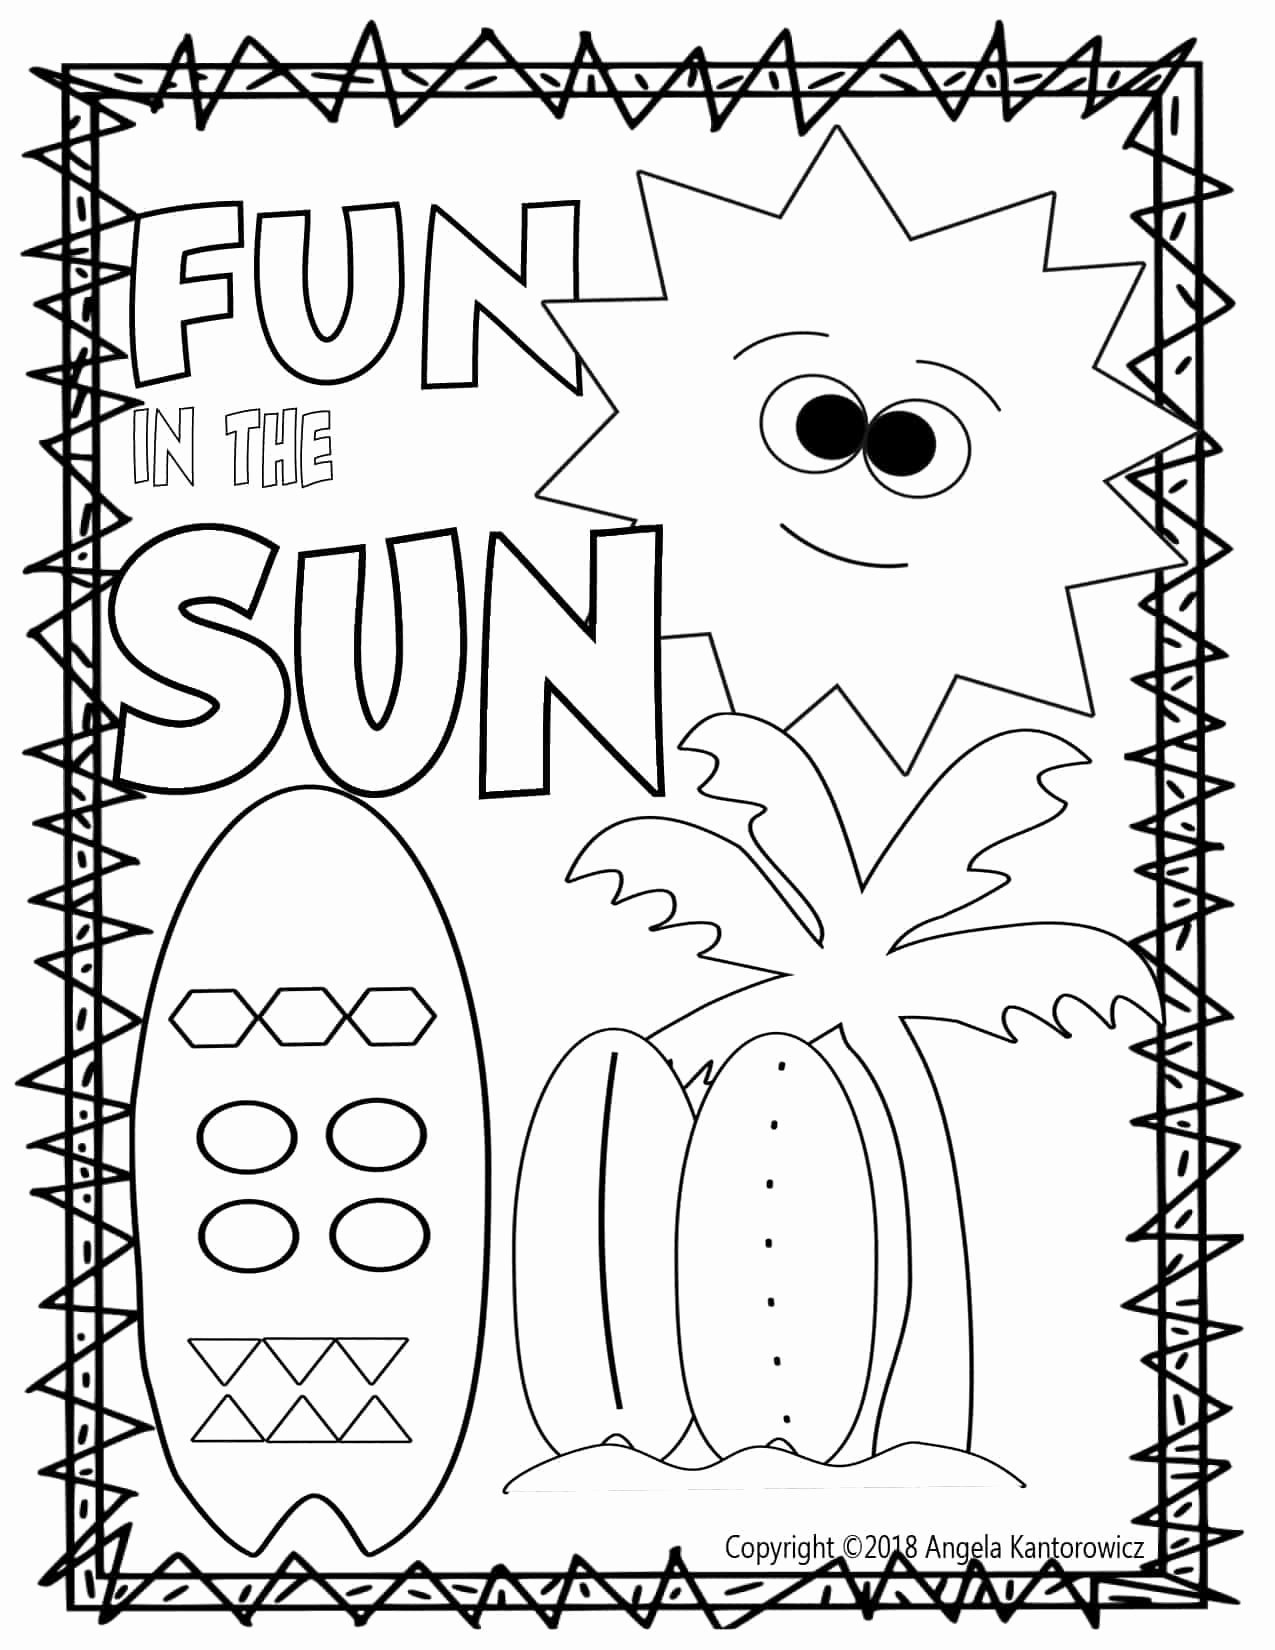 Summer Fun Worksheets for Preschoolers Fresh Worksheets Fun In the Sun Color Sheet Coloring Summer